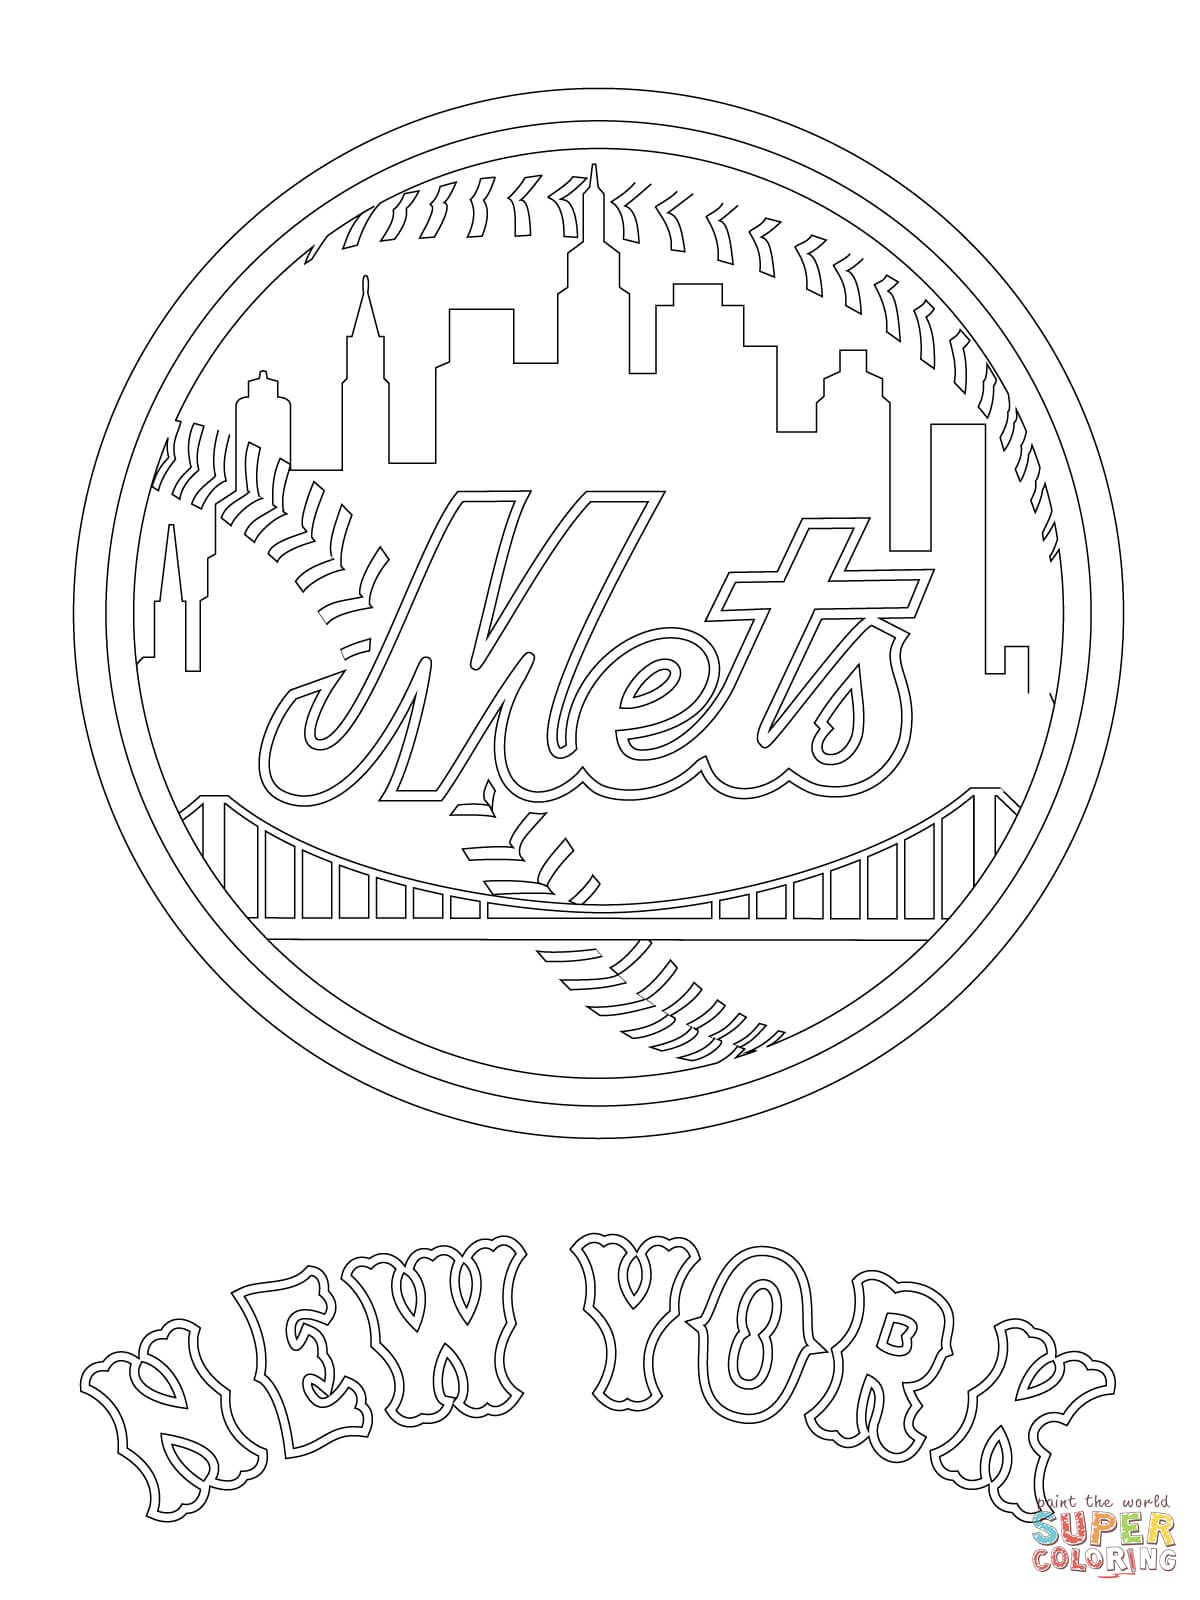 New York Mets Logo Coloring Page From Mlb Category Select From